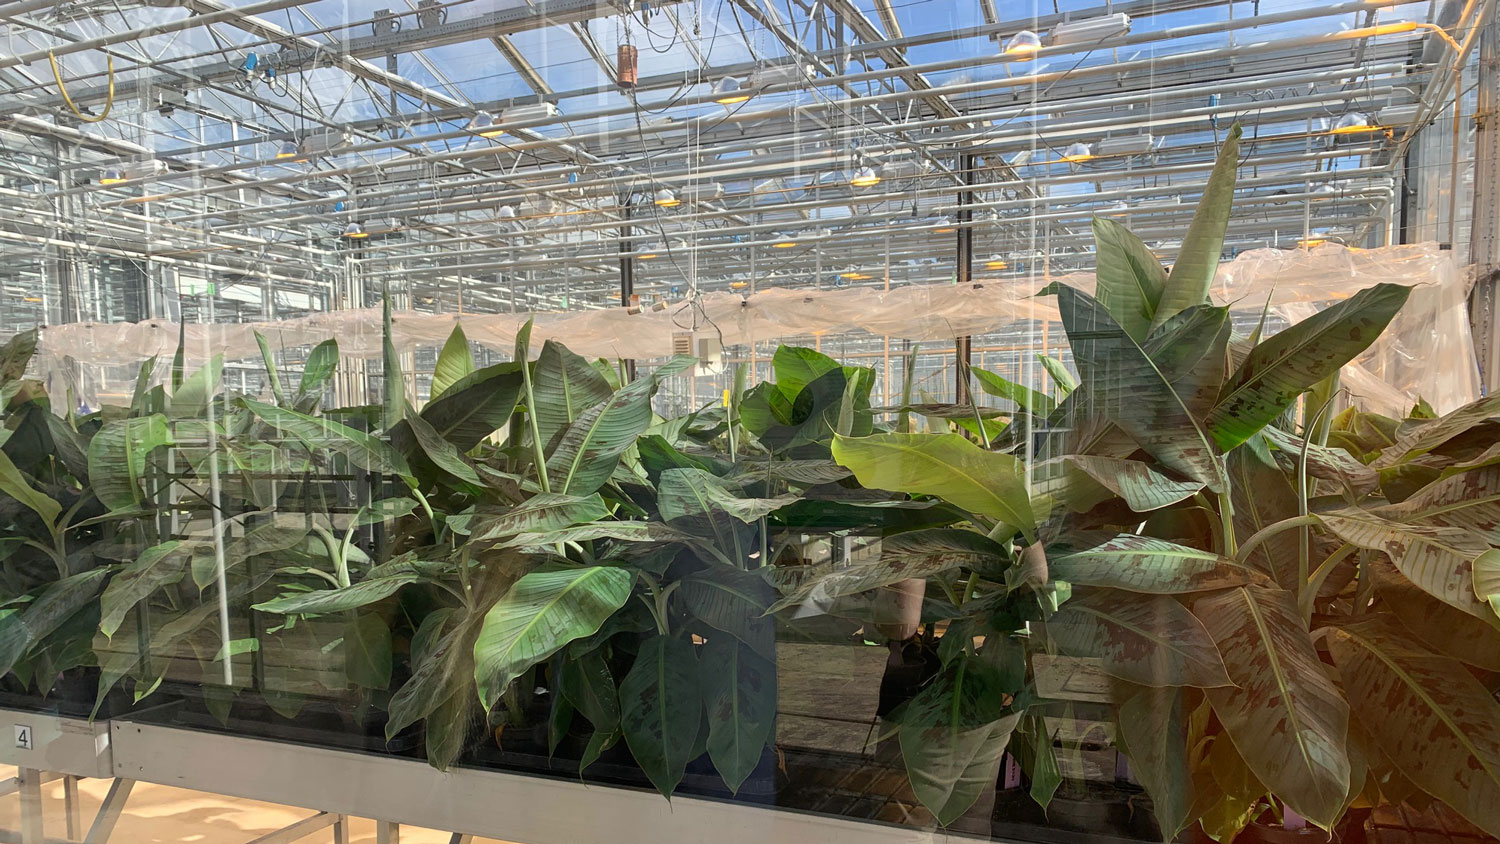 Plants at the Wageningen Greenhouse in the Netherlands